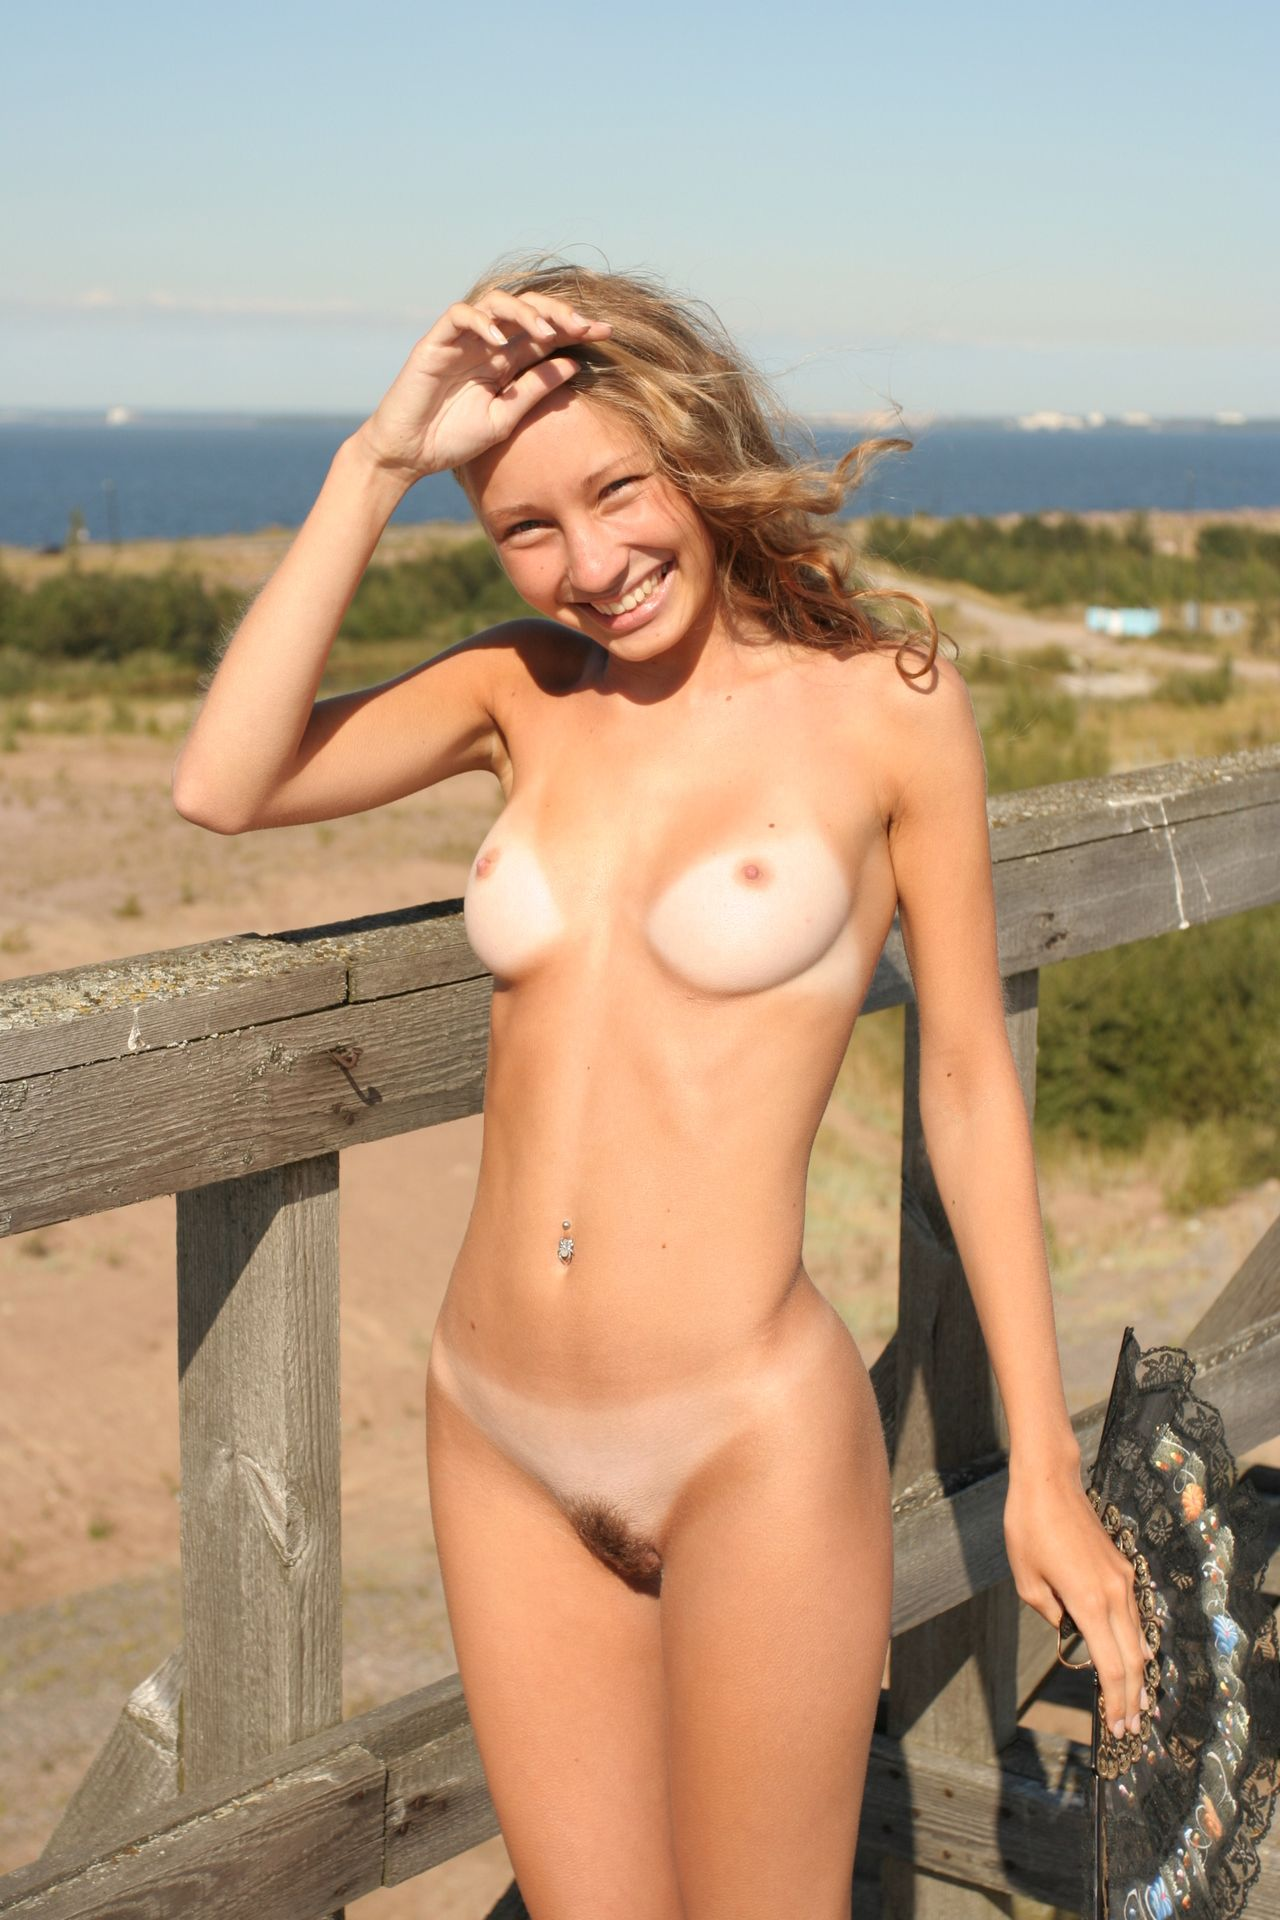 Cute girl nude naked nudist